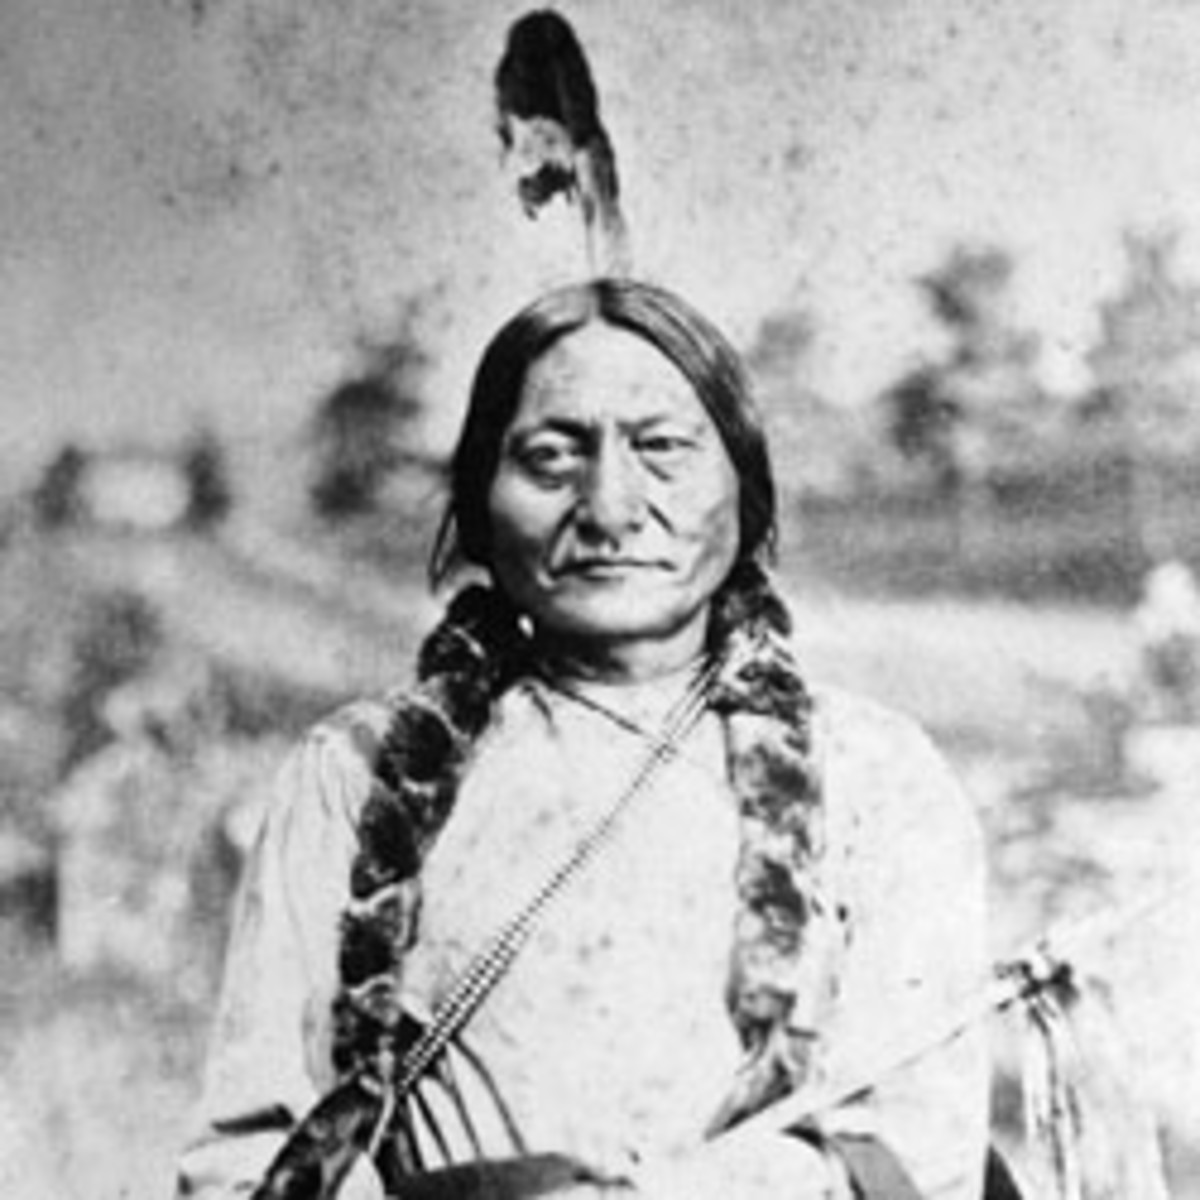 Sitting Bull (Photo: O.S. Goff/Hulton Archive/Getty Images)